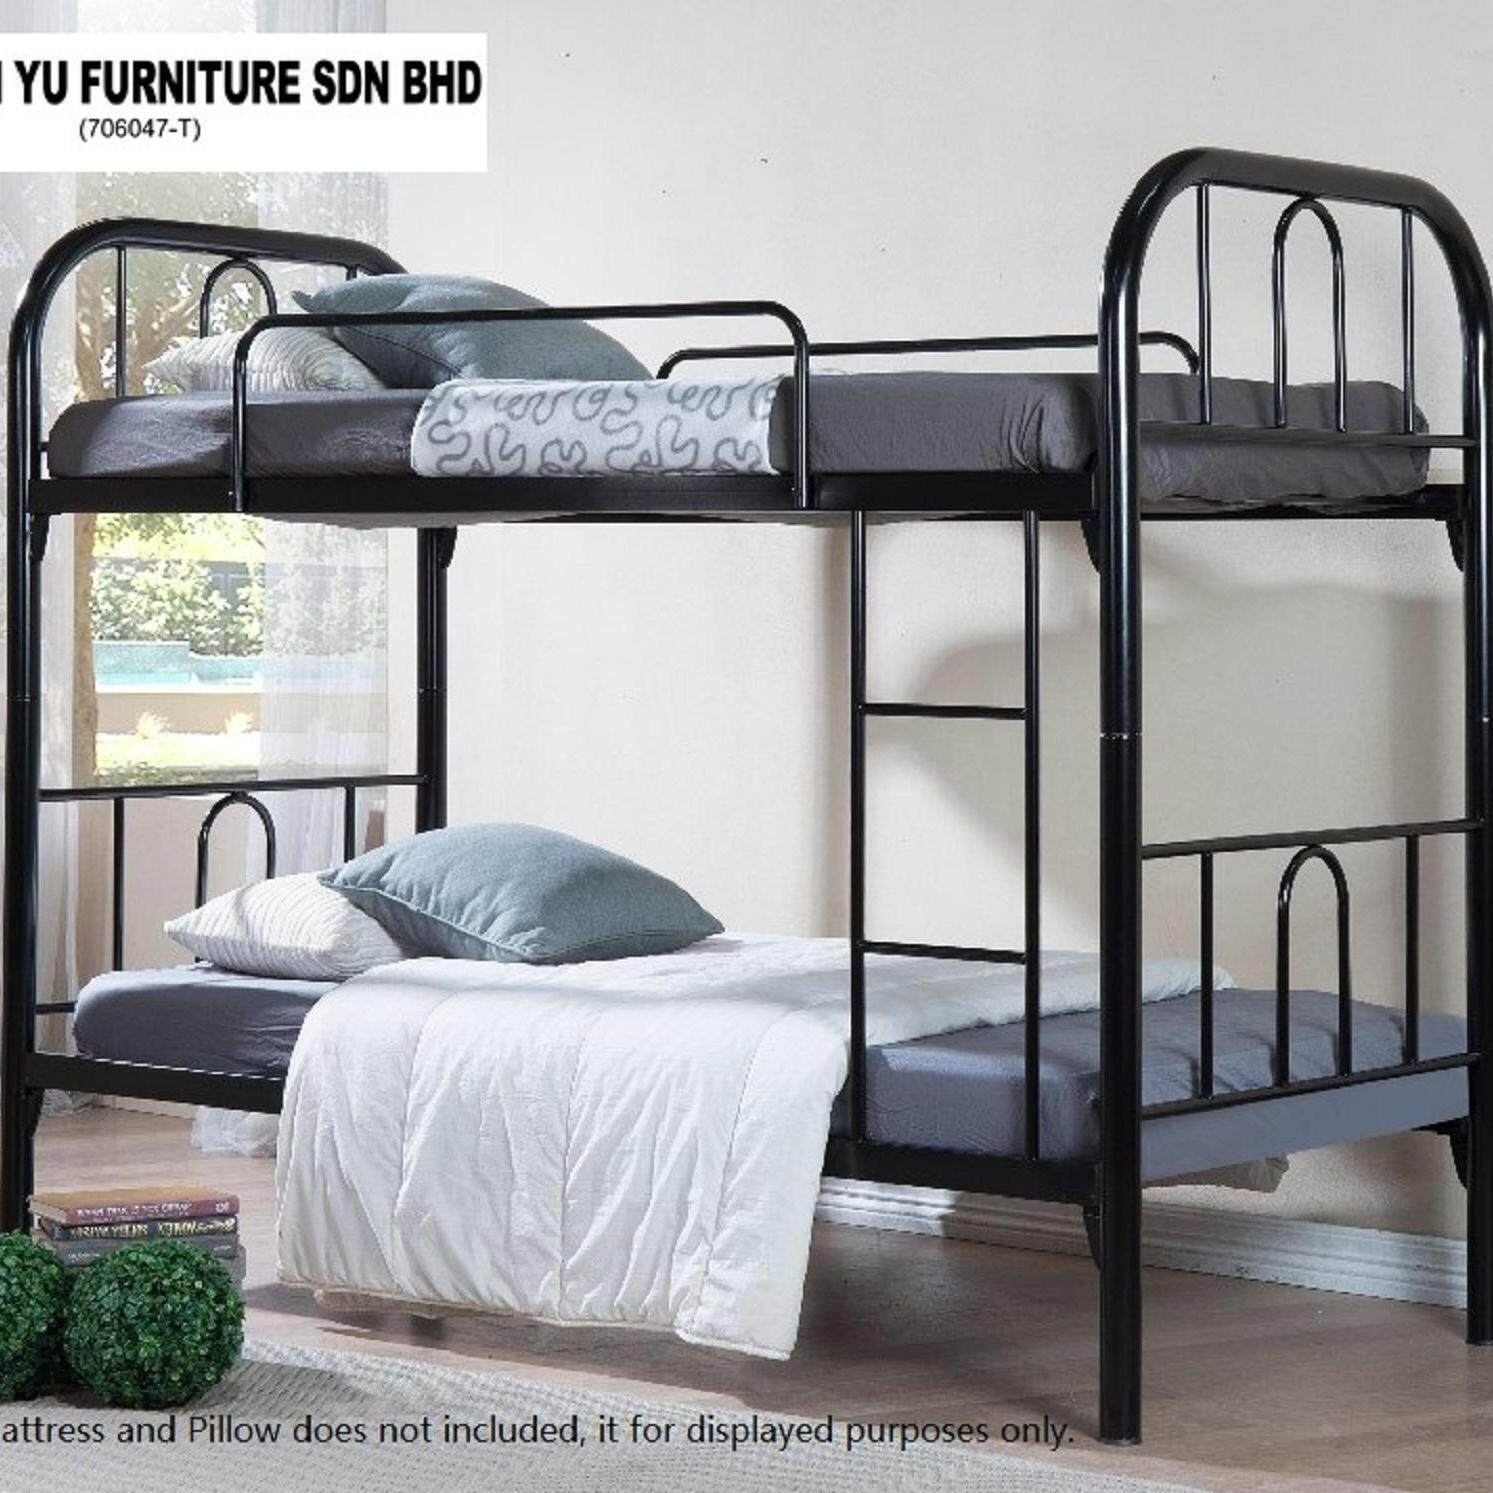 KHOON YU FURNITURE: STRONG DURABLE SAFARI DOUBLE DECKER/BUNK BED BEDROOM FURNITURE. Bed Frame